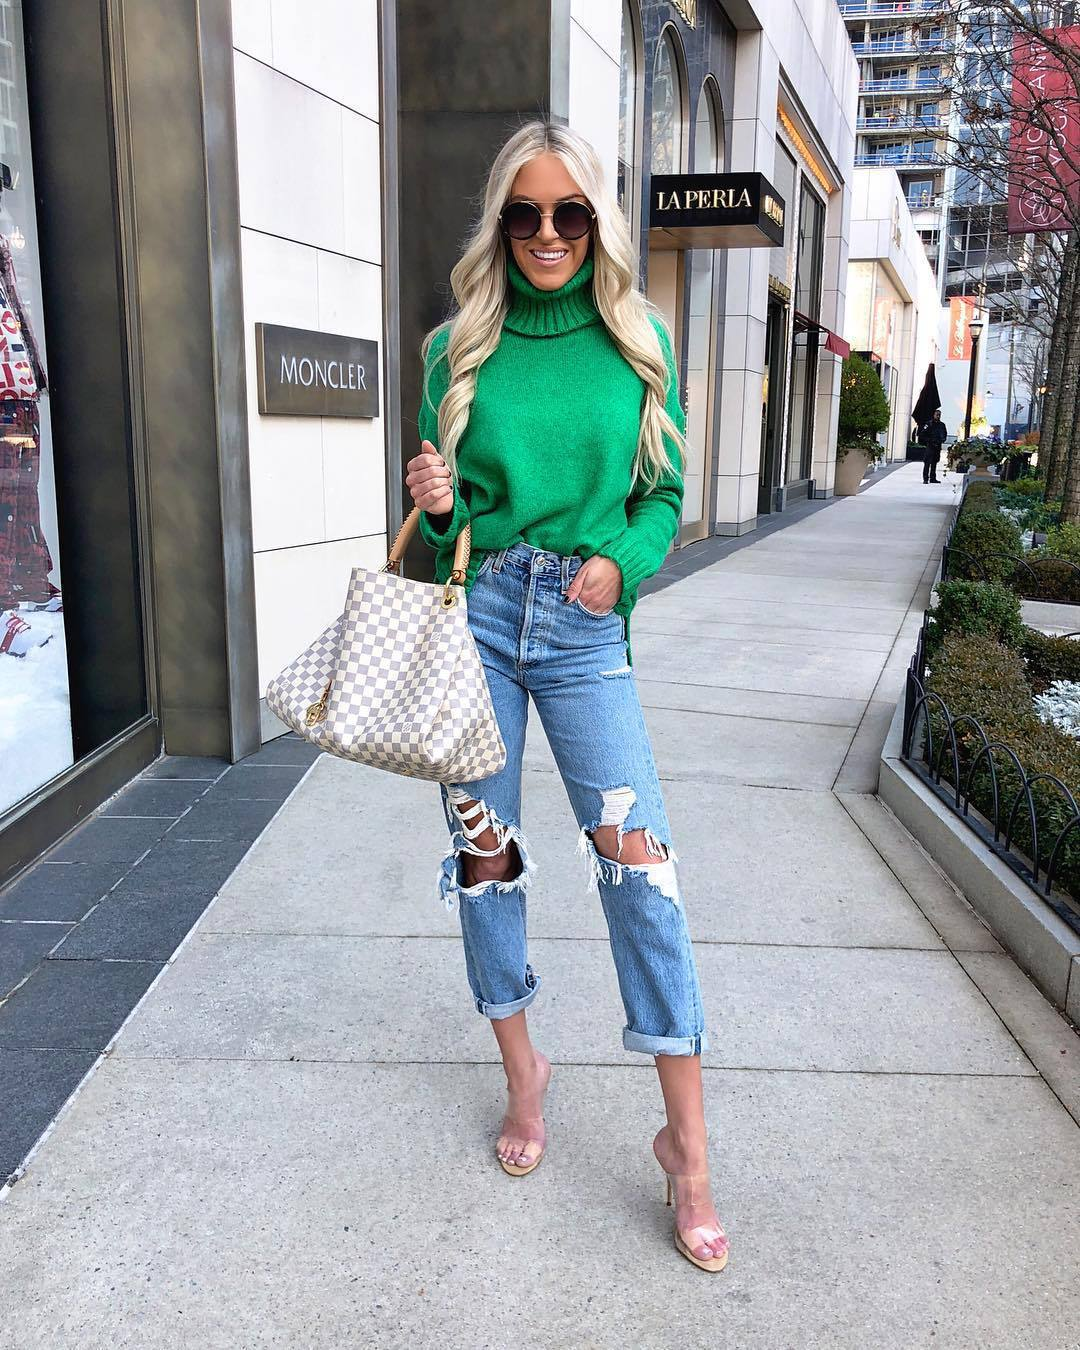 sweater turtleneck sweater green sweater sandals mom jeans high waisted jeans ripped jeans shoulder bag sunglasses